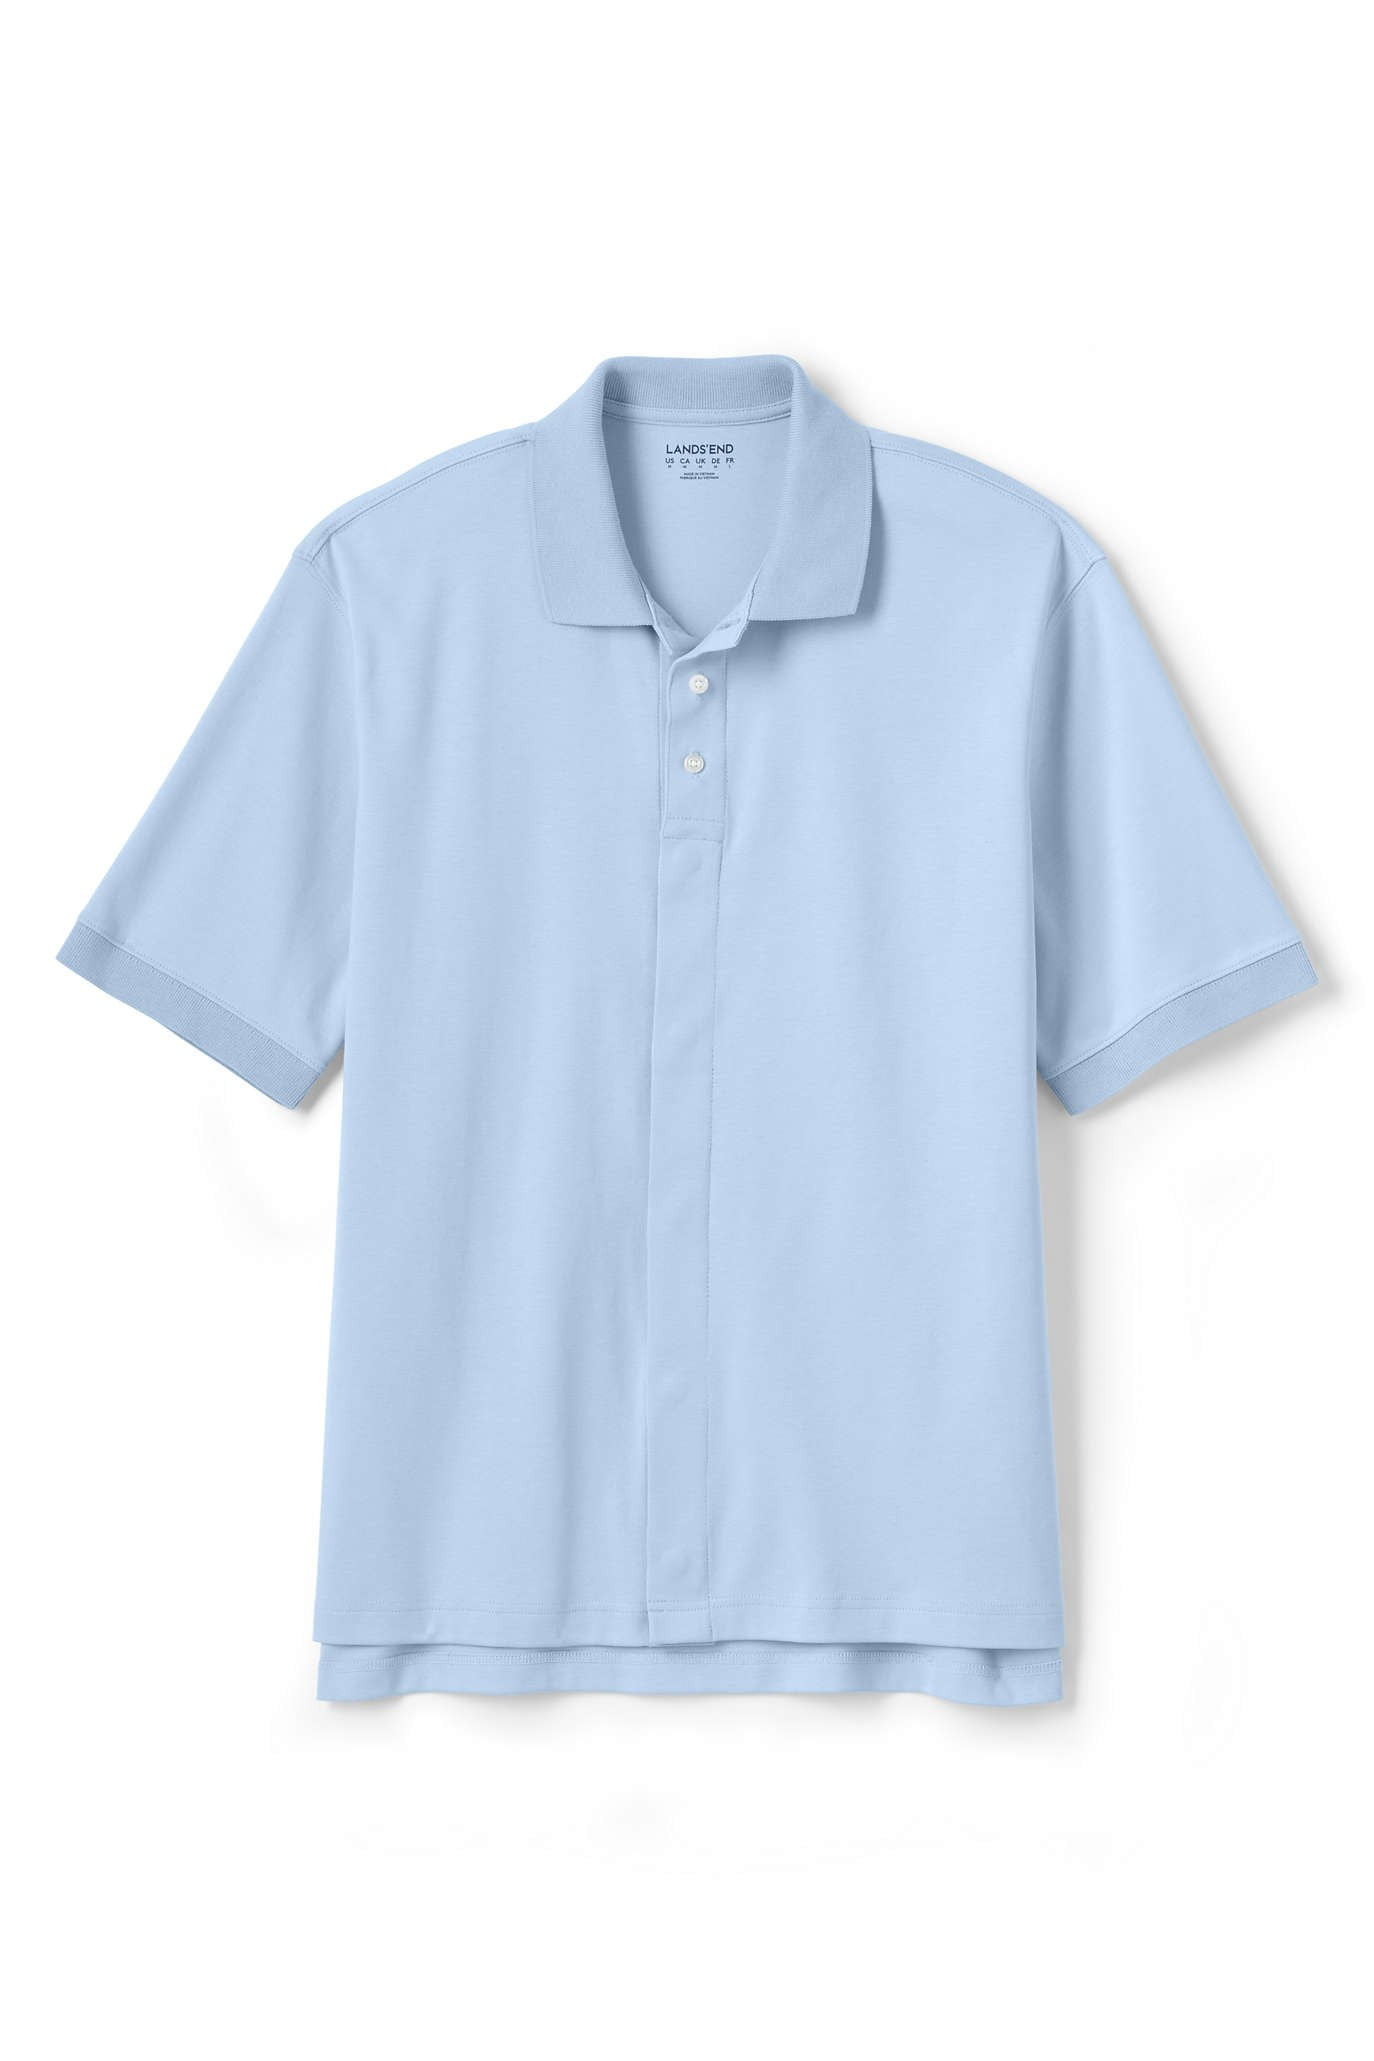 adaptive polo shirt from Lands End